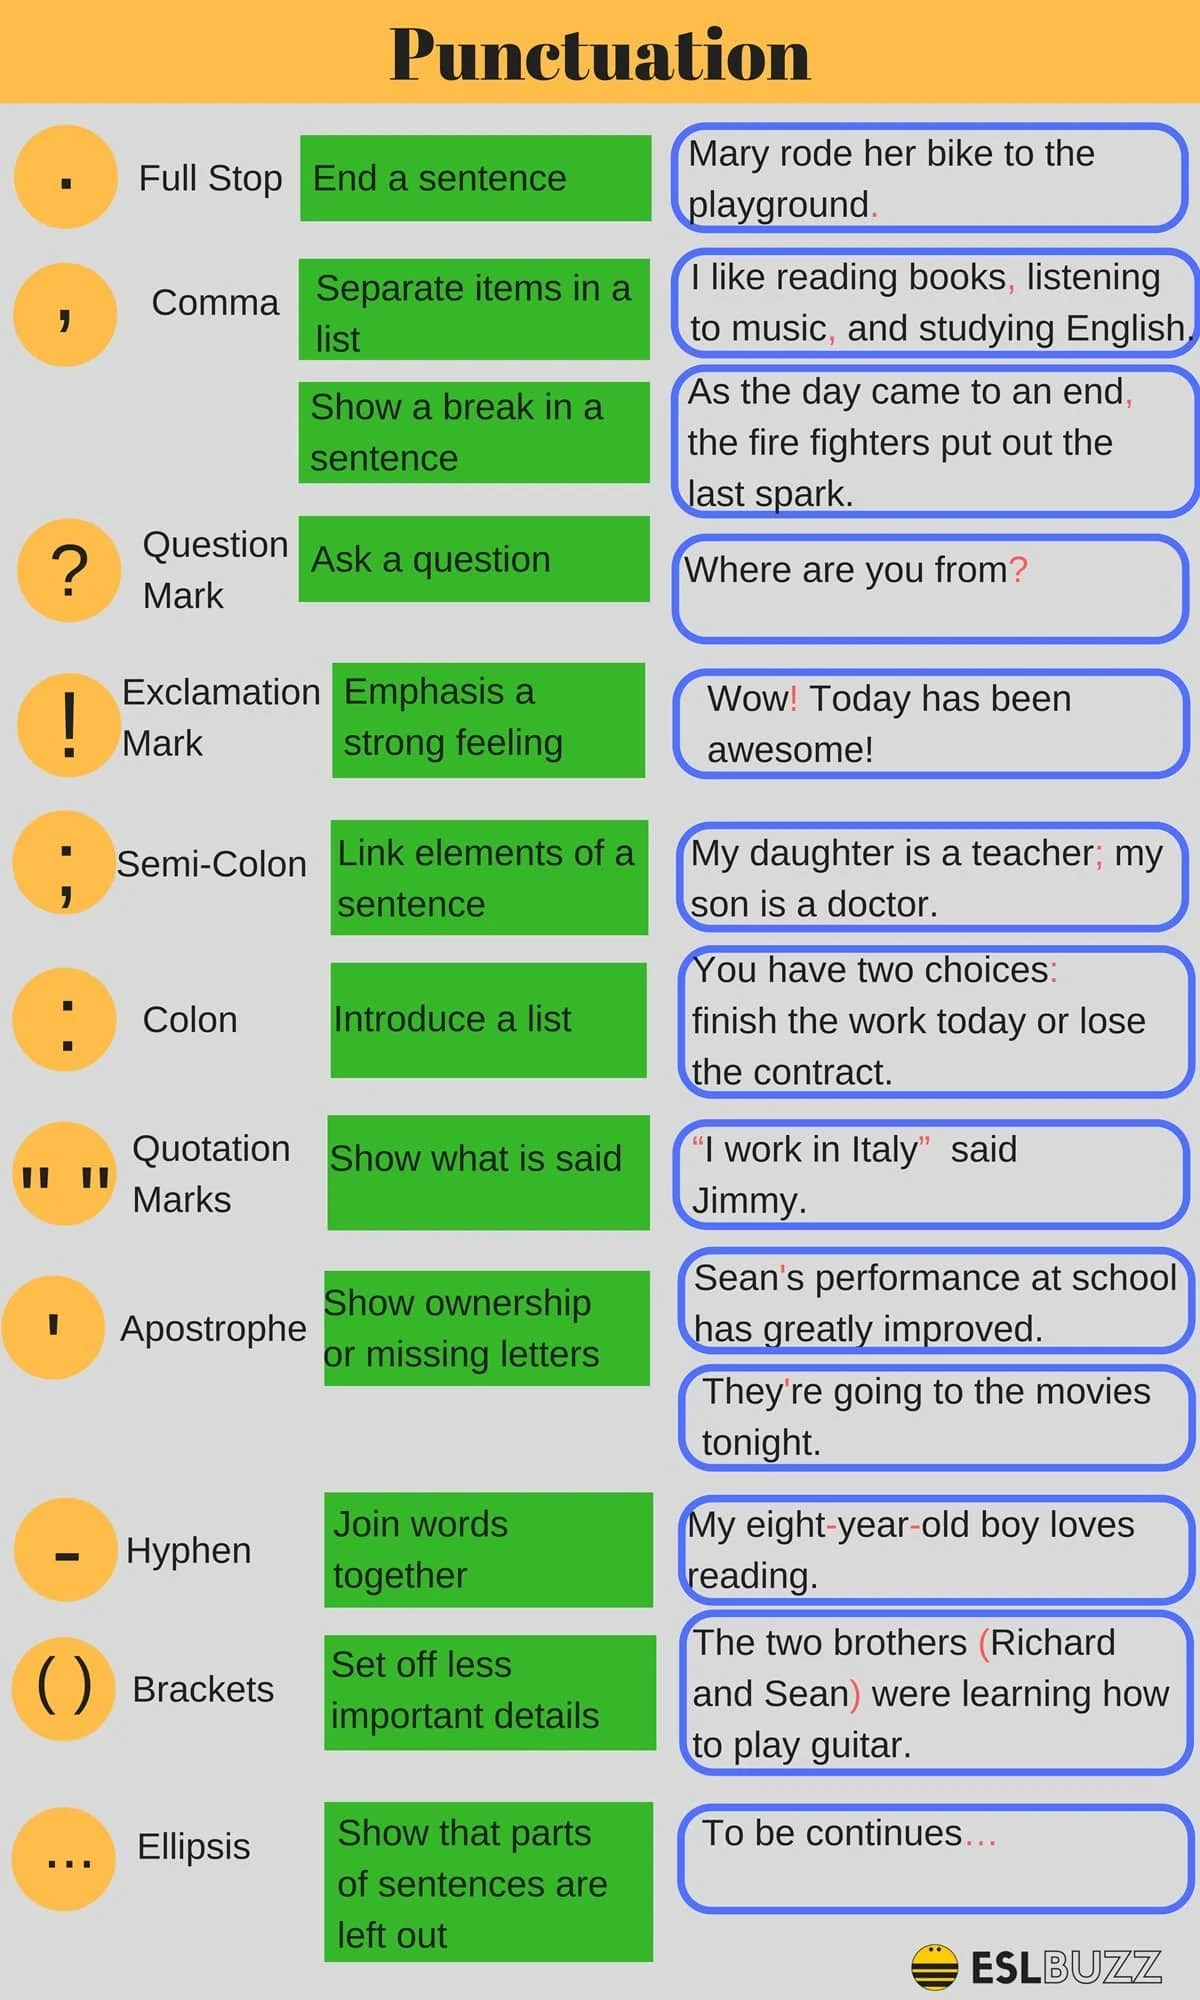 English Punctuation Rules And Examples